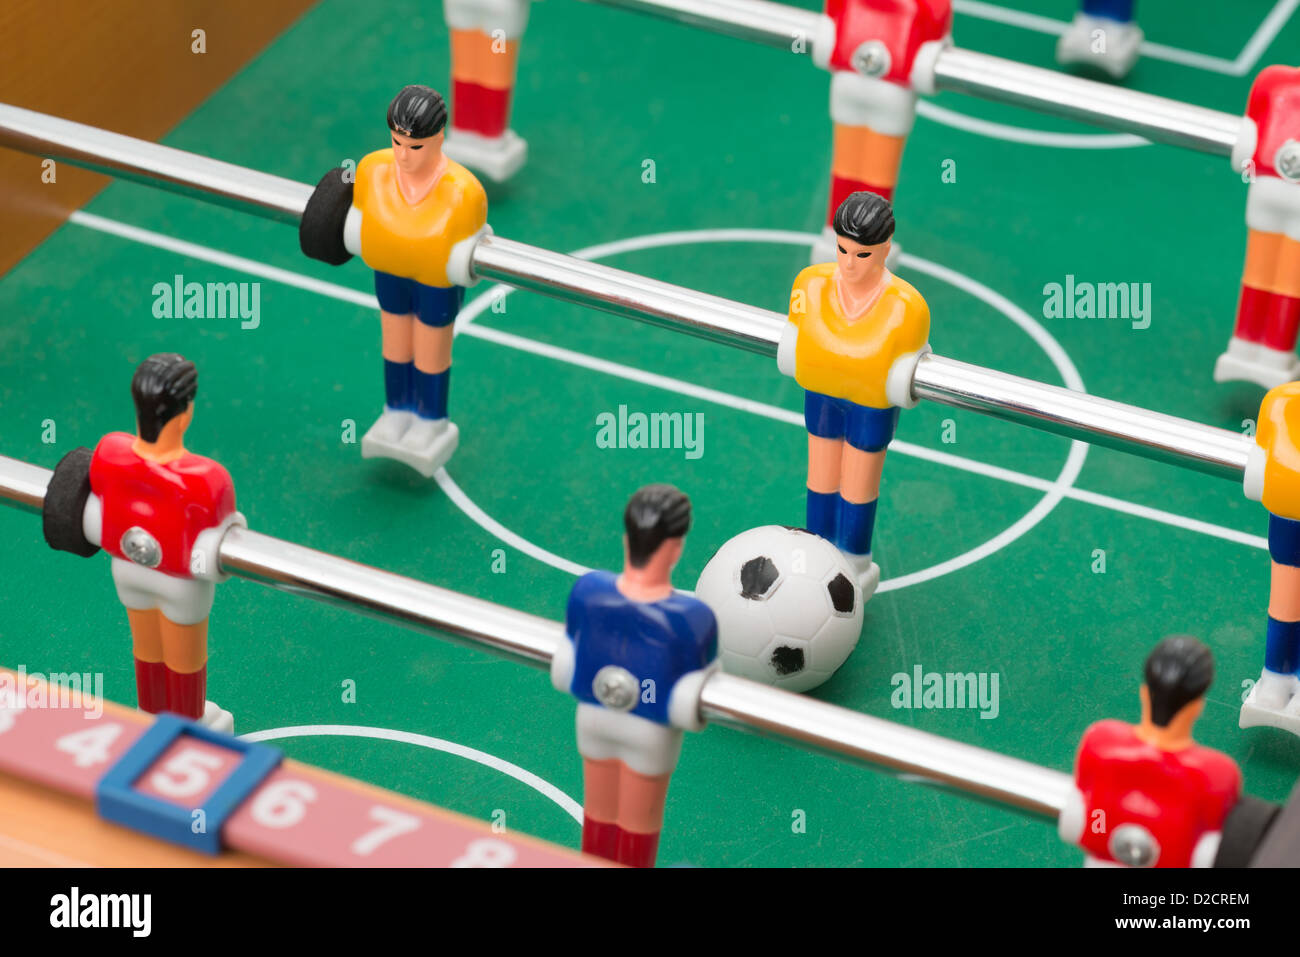 Close-up on the players of a table football game - Stock Image